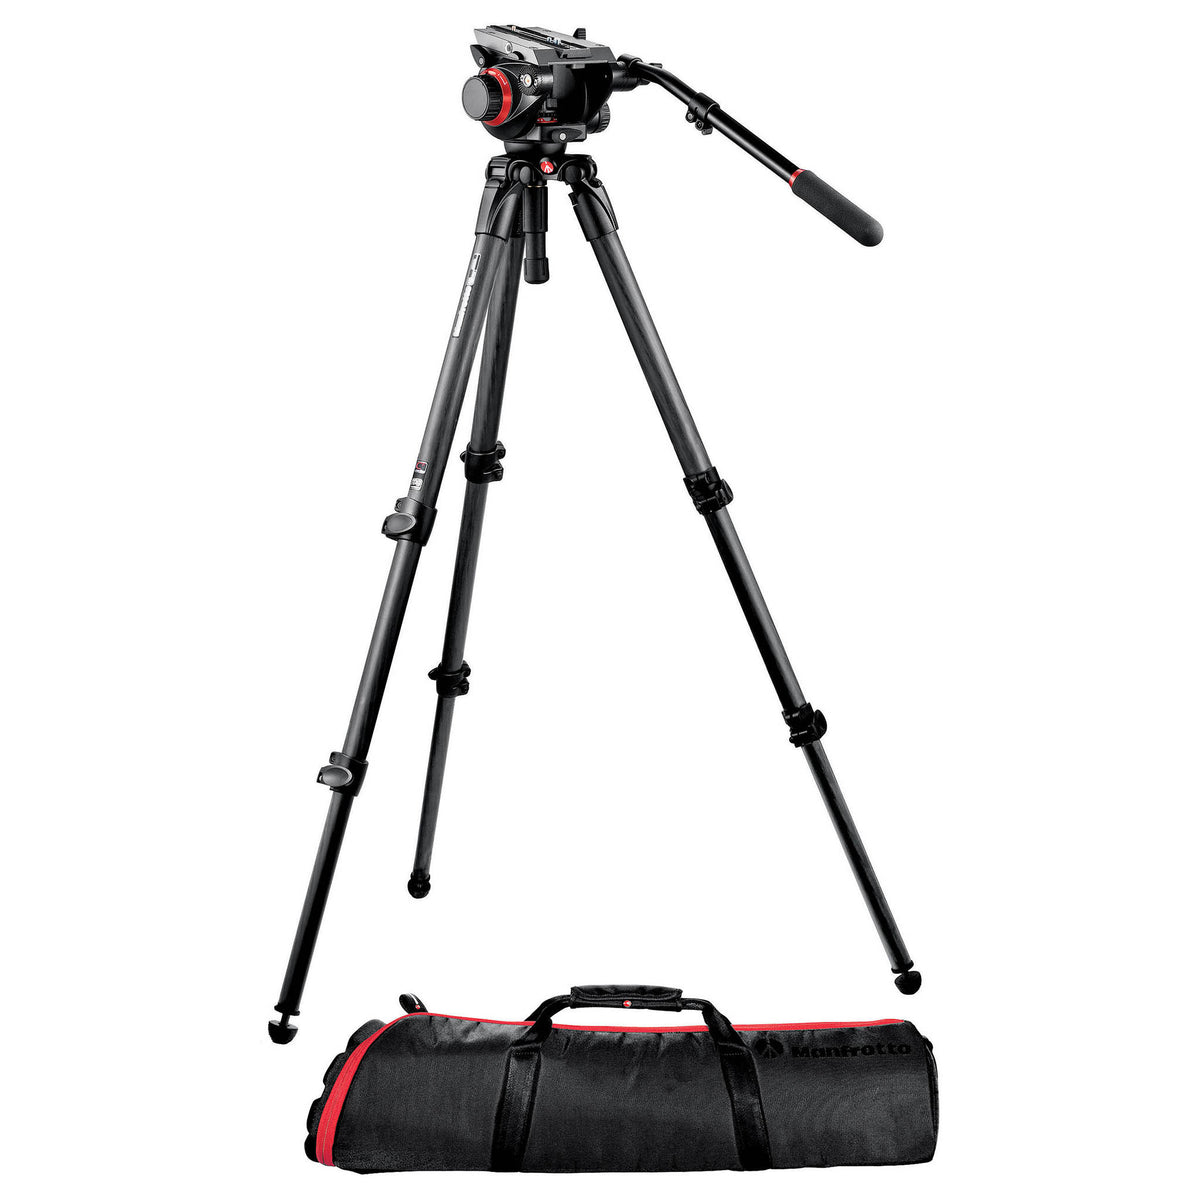 Manfrotto 504HD with Carbon Tripod Legs and Carrying Bag